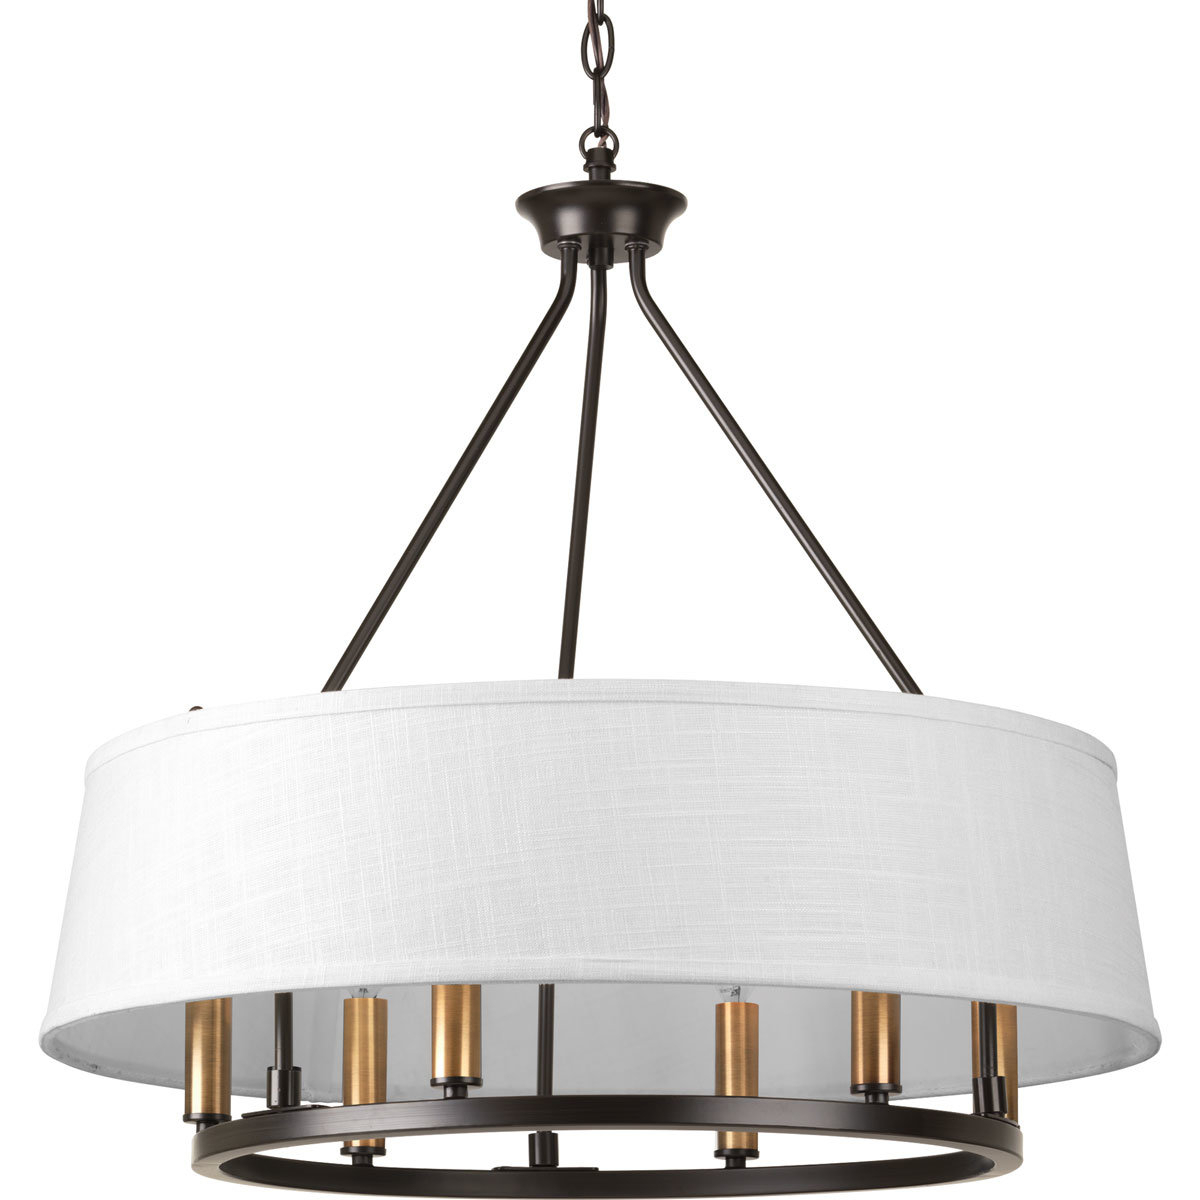 Hughett 6 Light Drum Chandelier For Widely Used Breithaup 4 Light Drum Chandeliers (View 8 of 20)